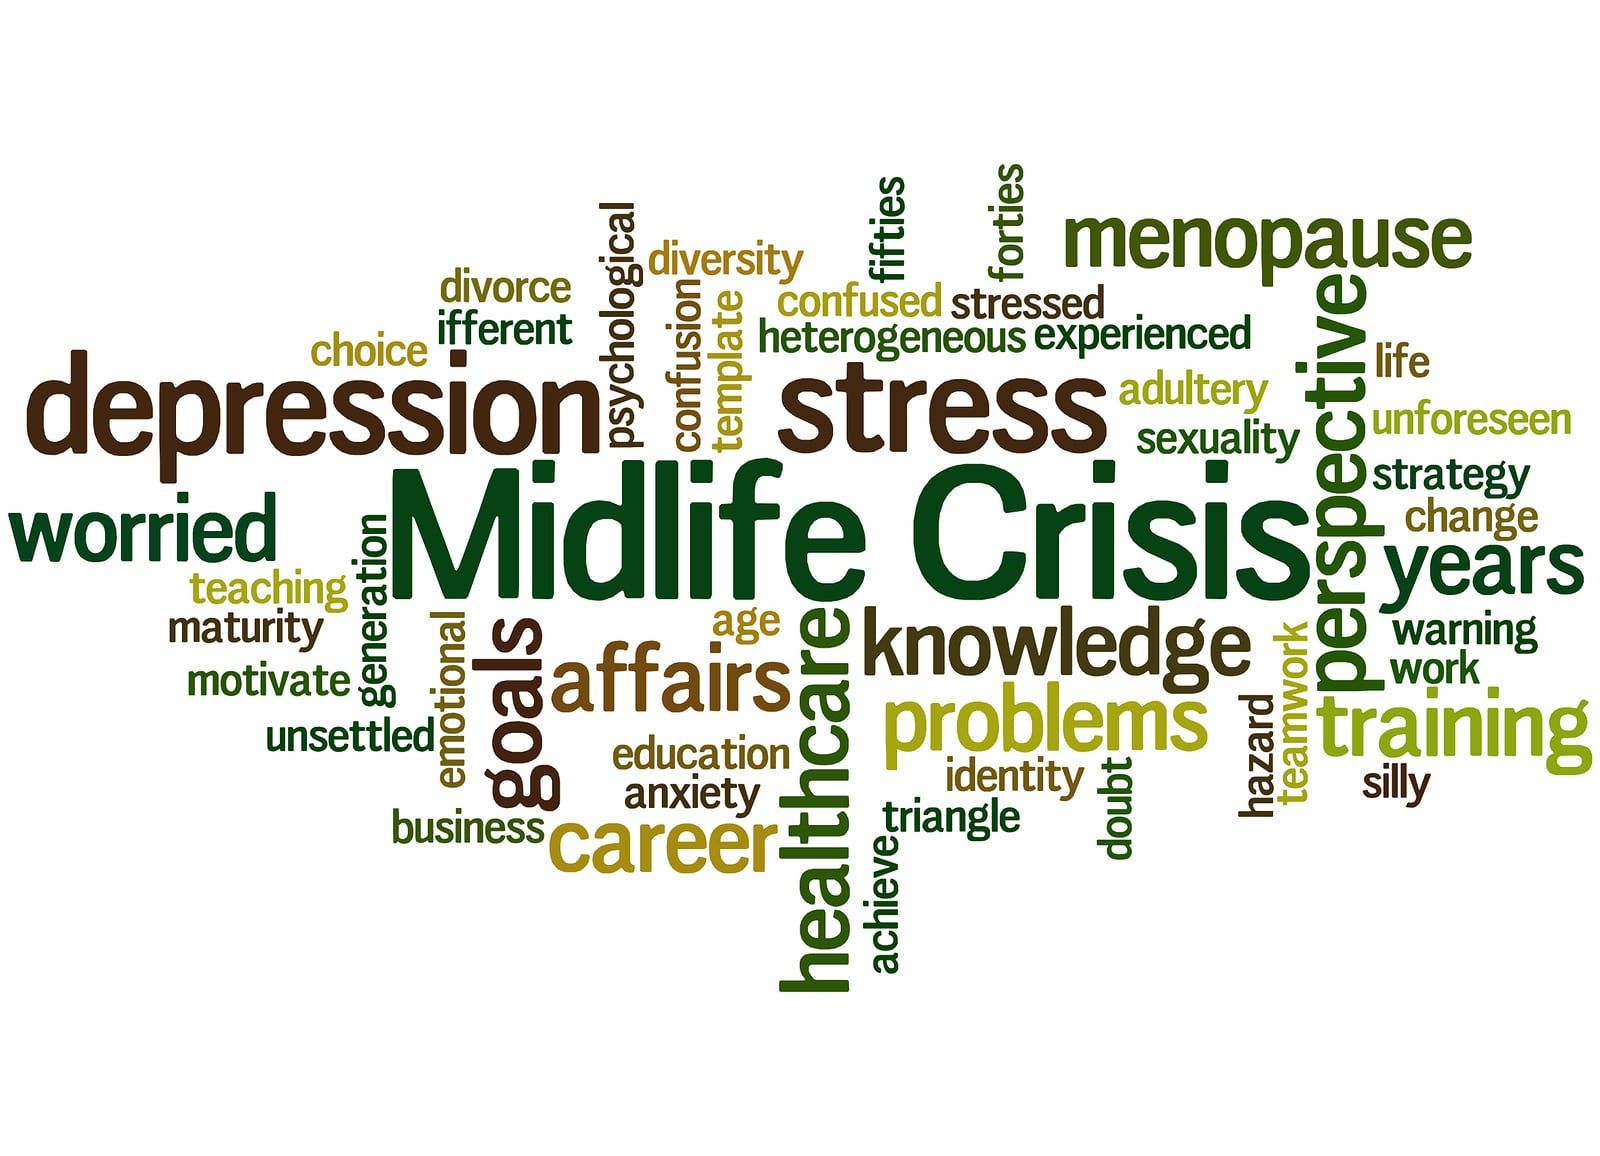 Midlife crisis word cloud concept on white background.